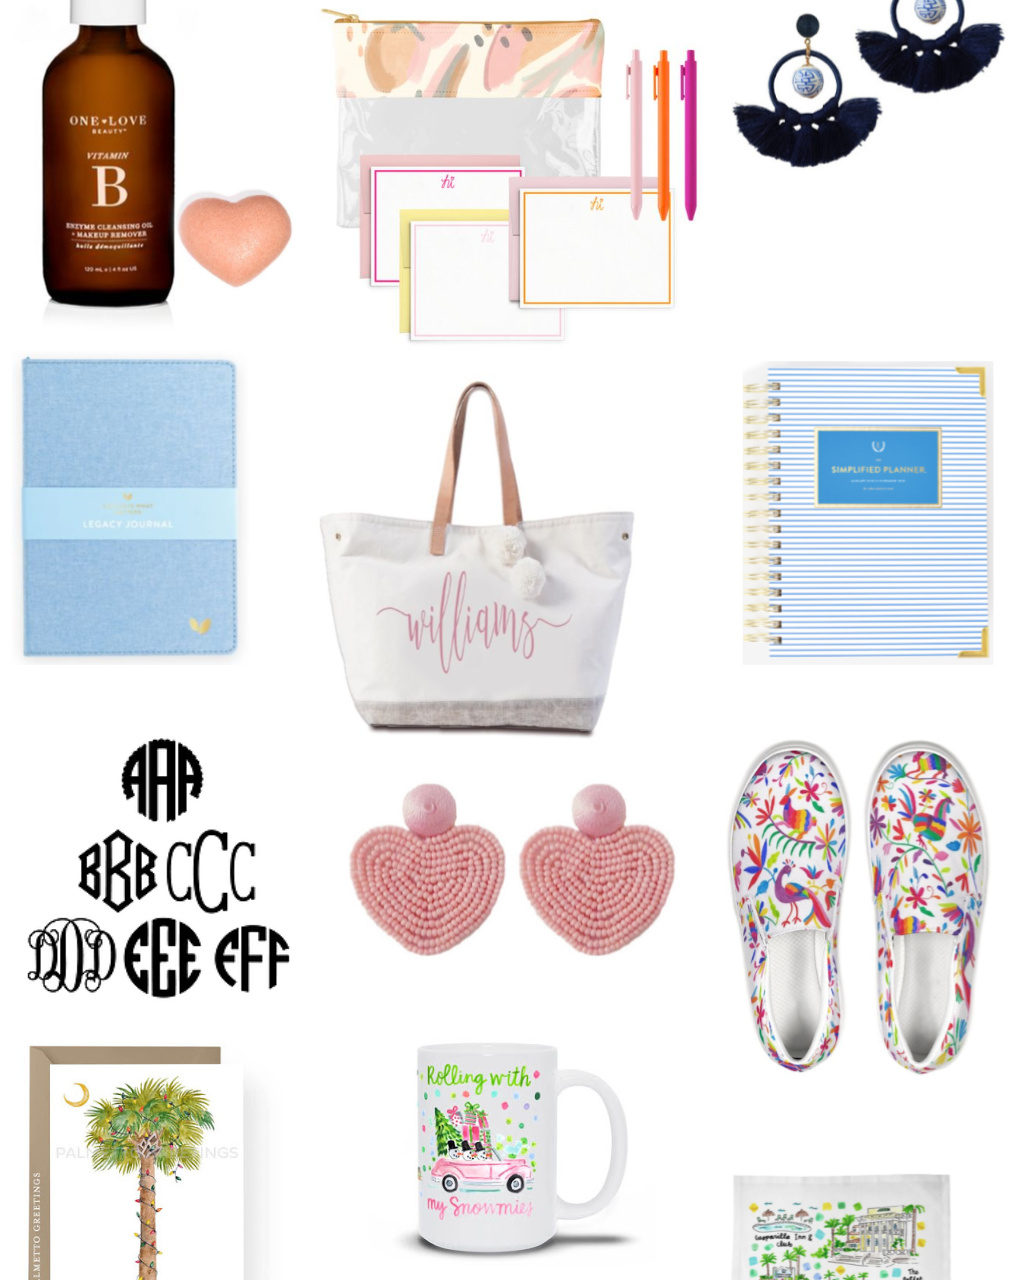 Shop Small Saturday Holiday Gift Guide 2019